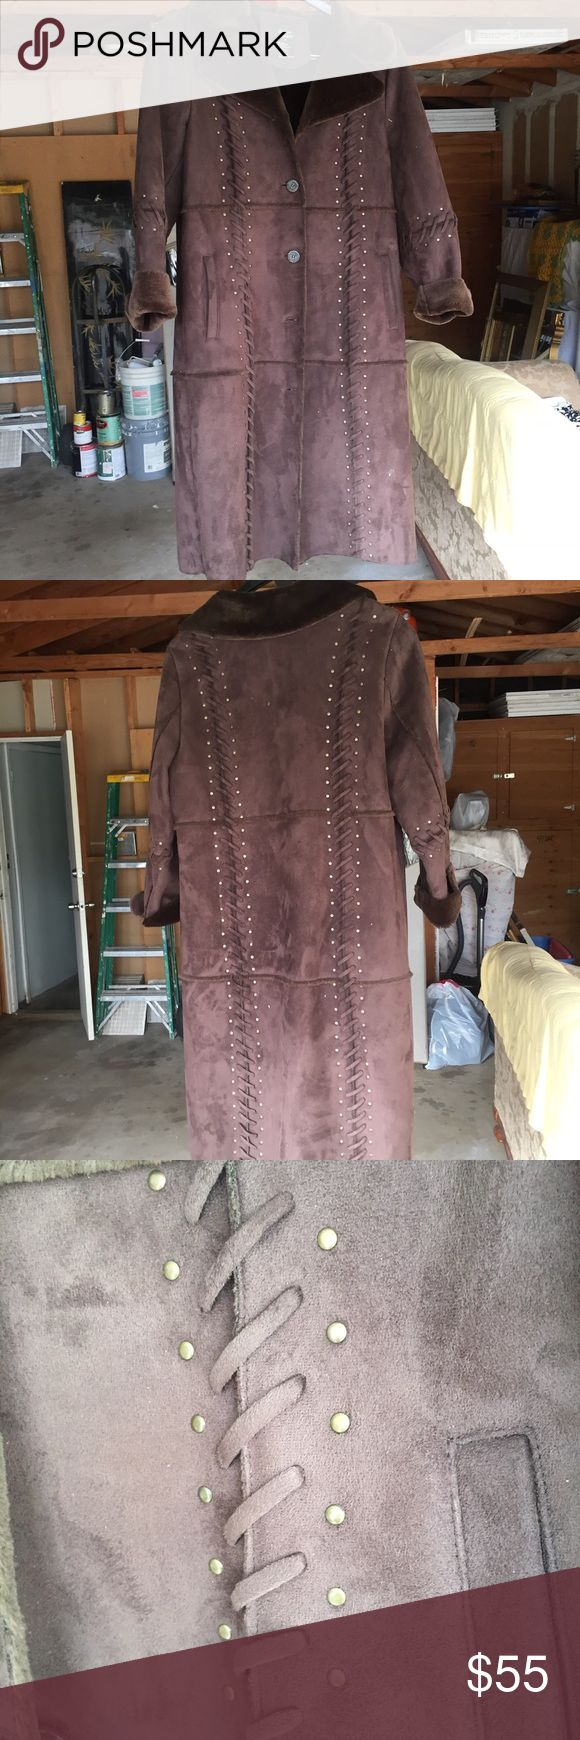 Ladies Brown winter coat. Size Medium Dennis Basso brown women's knee length coat. Faux Suede/ faux Shearling. Feels like a teddy bear. Warm and cozy. Pre worn; in good condition. Weave and gold stud accents. Dennis Basso Jackets & Coats Trench Coats